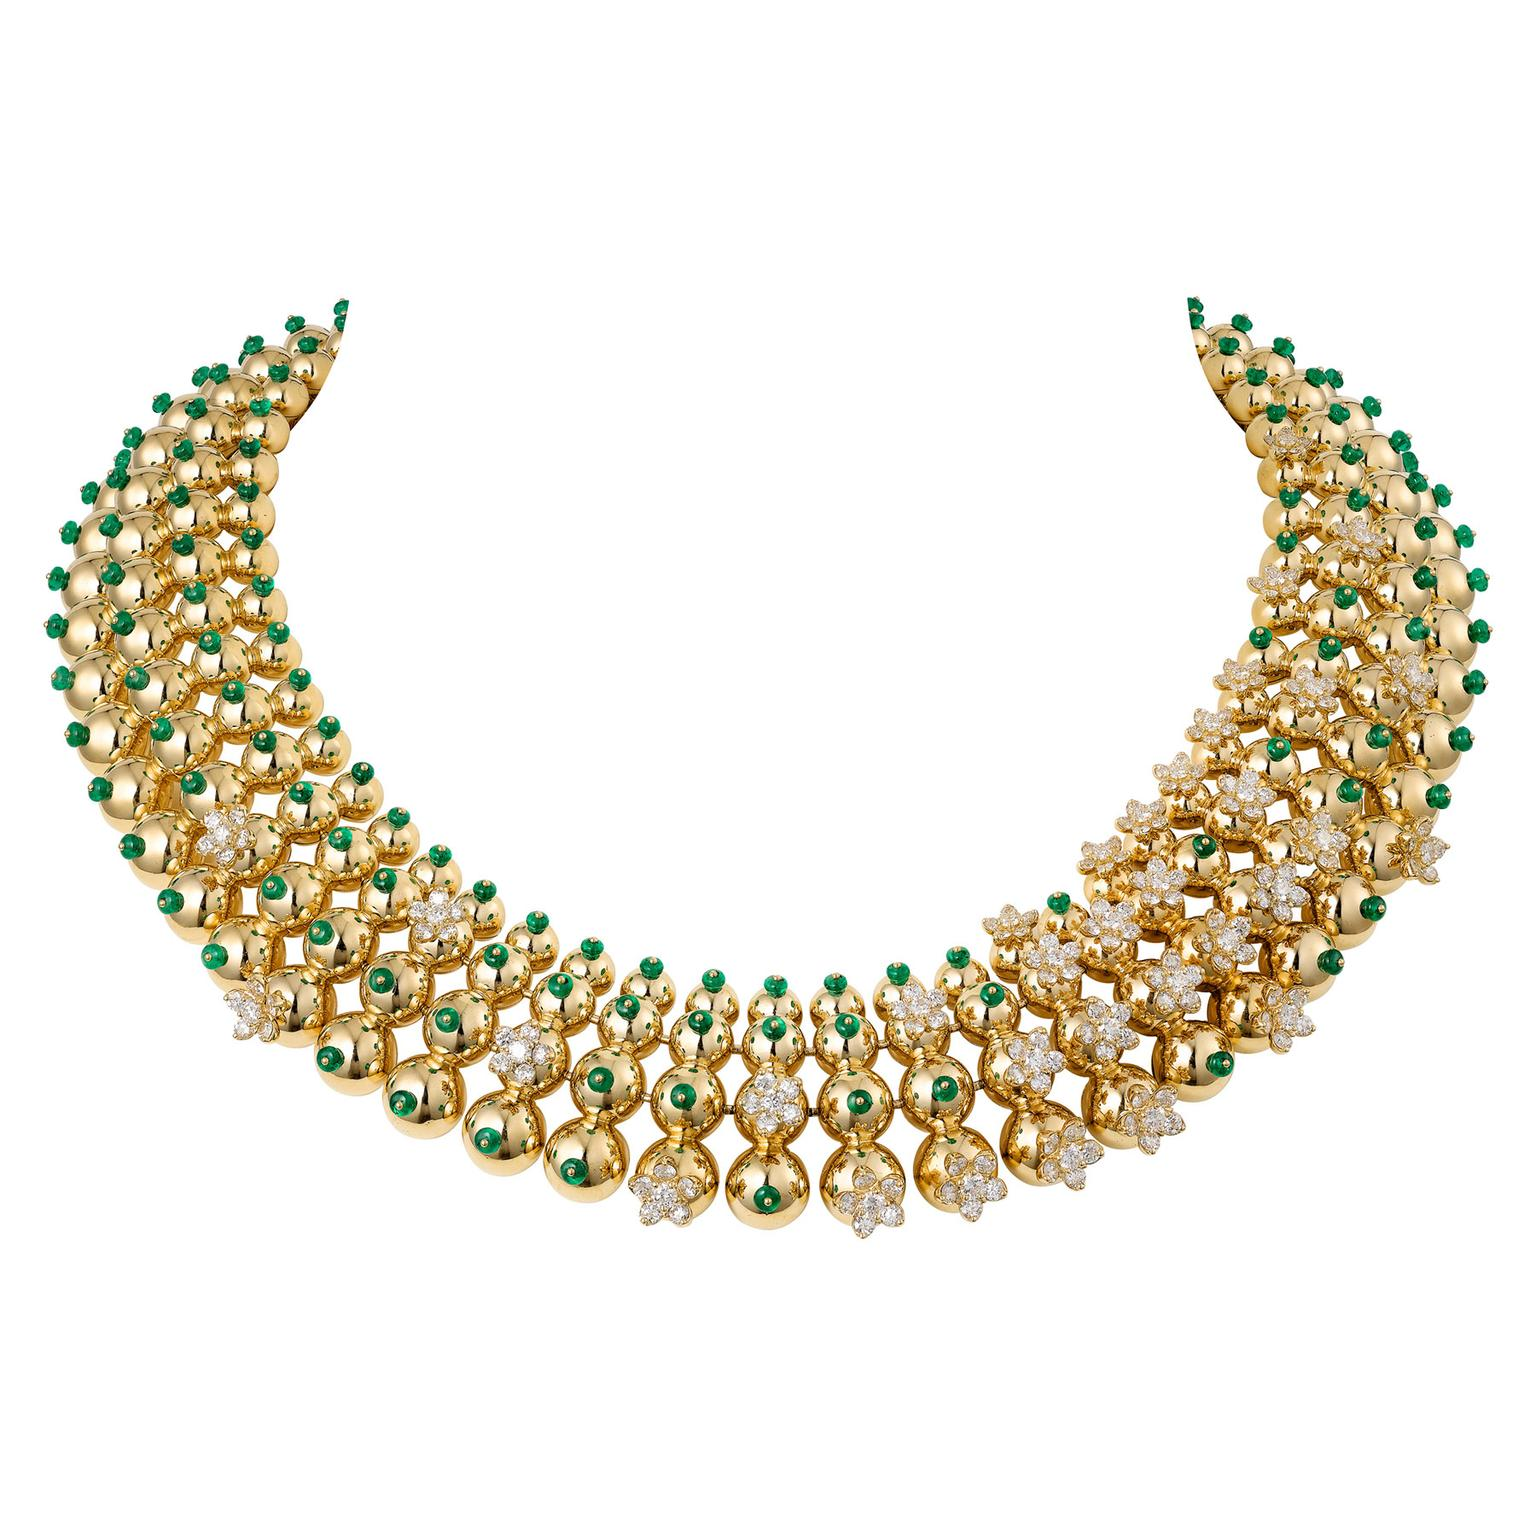 Excellent Cactus de Cartier necklace in yellow gold with emerald and diamond  HO97